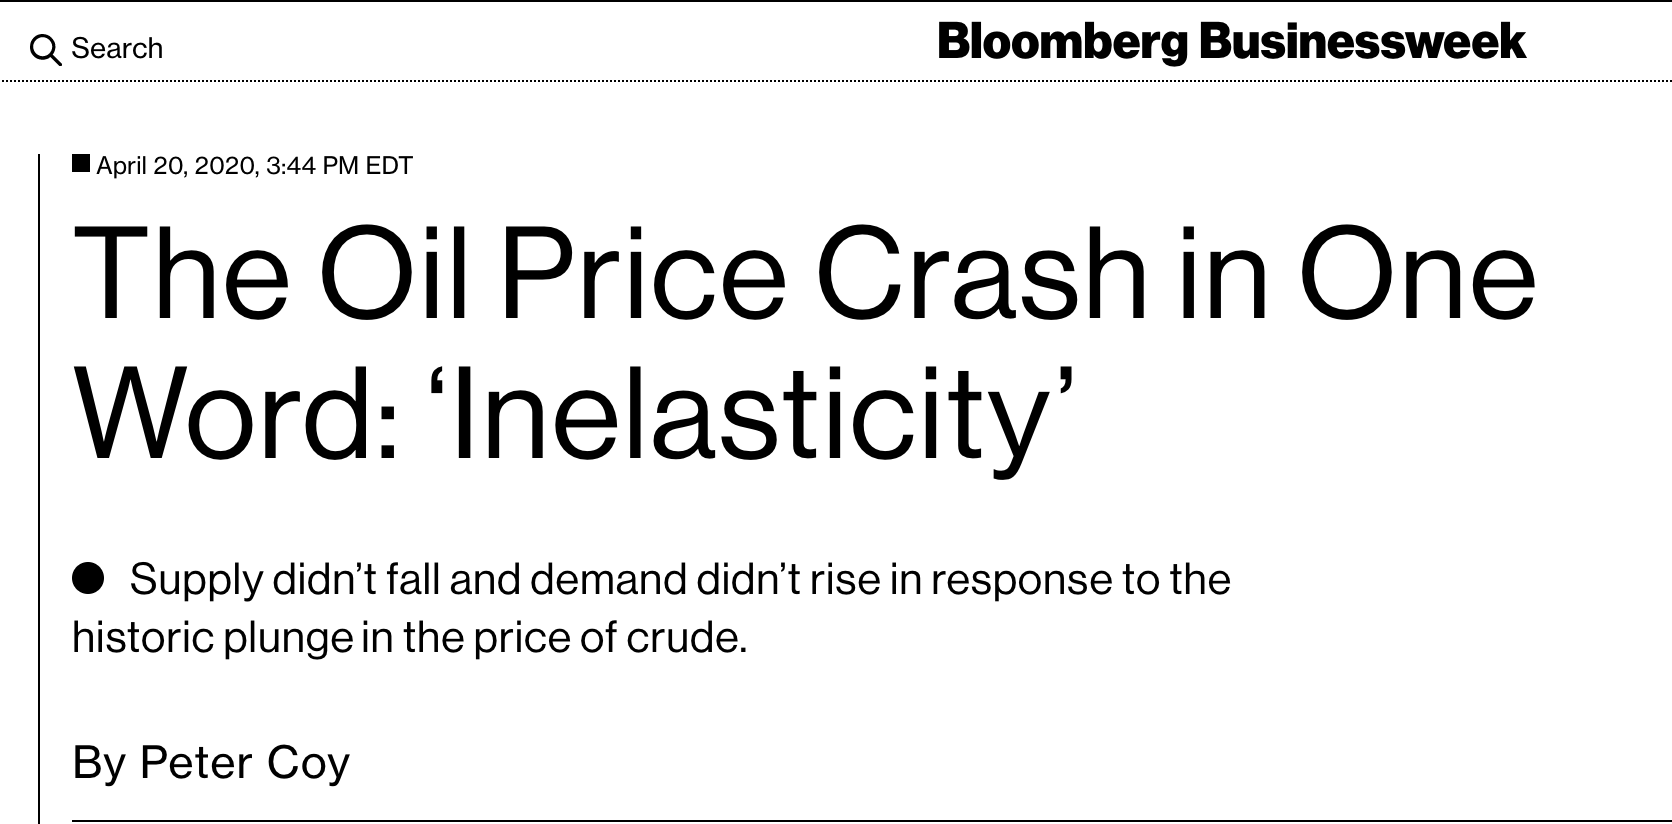 The oil price crash in one word: Inelasticity